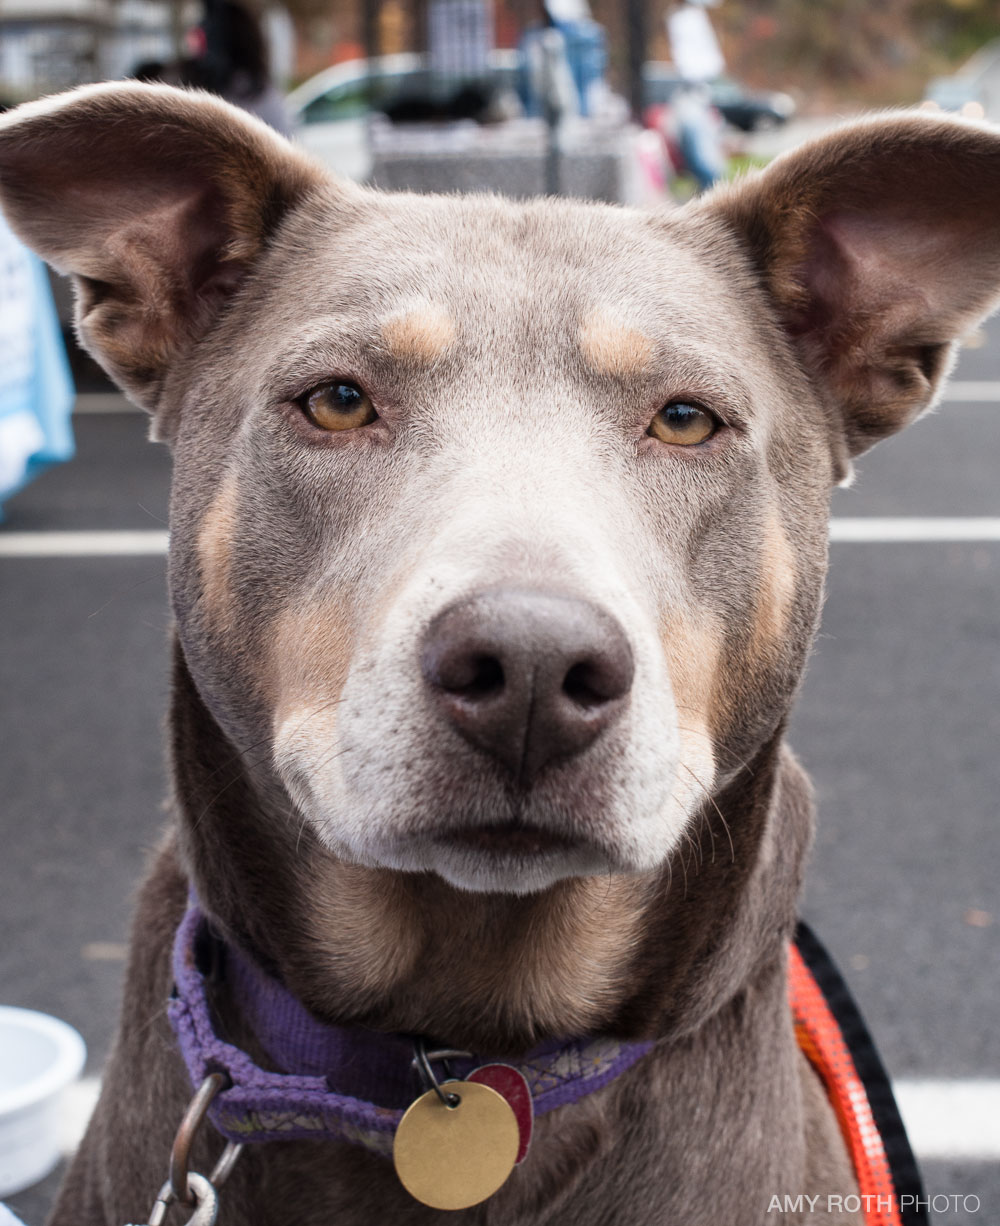 Tasha was a particular favorite of mine. She's available for adoption through Ramapo Bergen Animal Refuge, Inc. For more information, click through the picture.